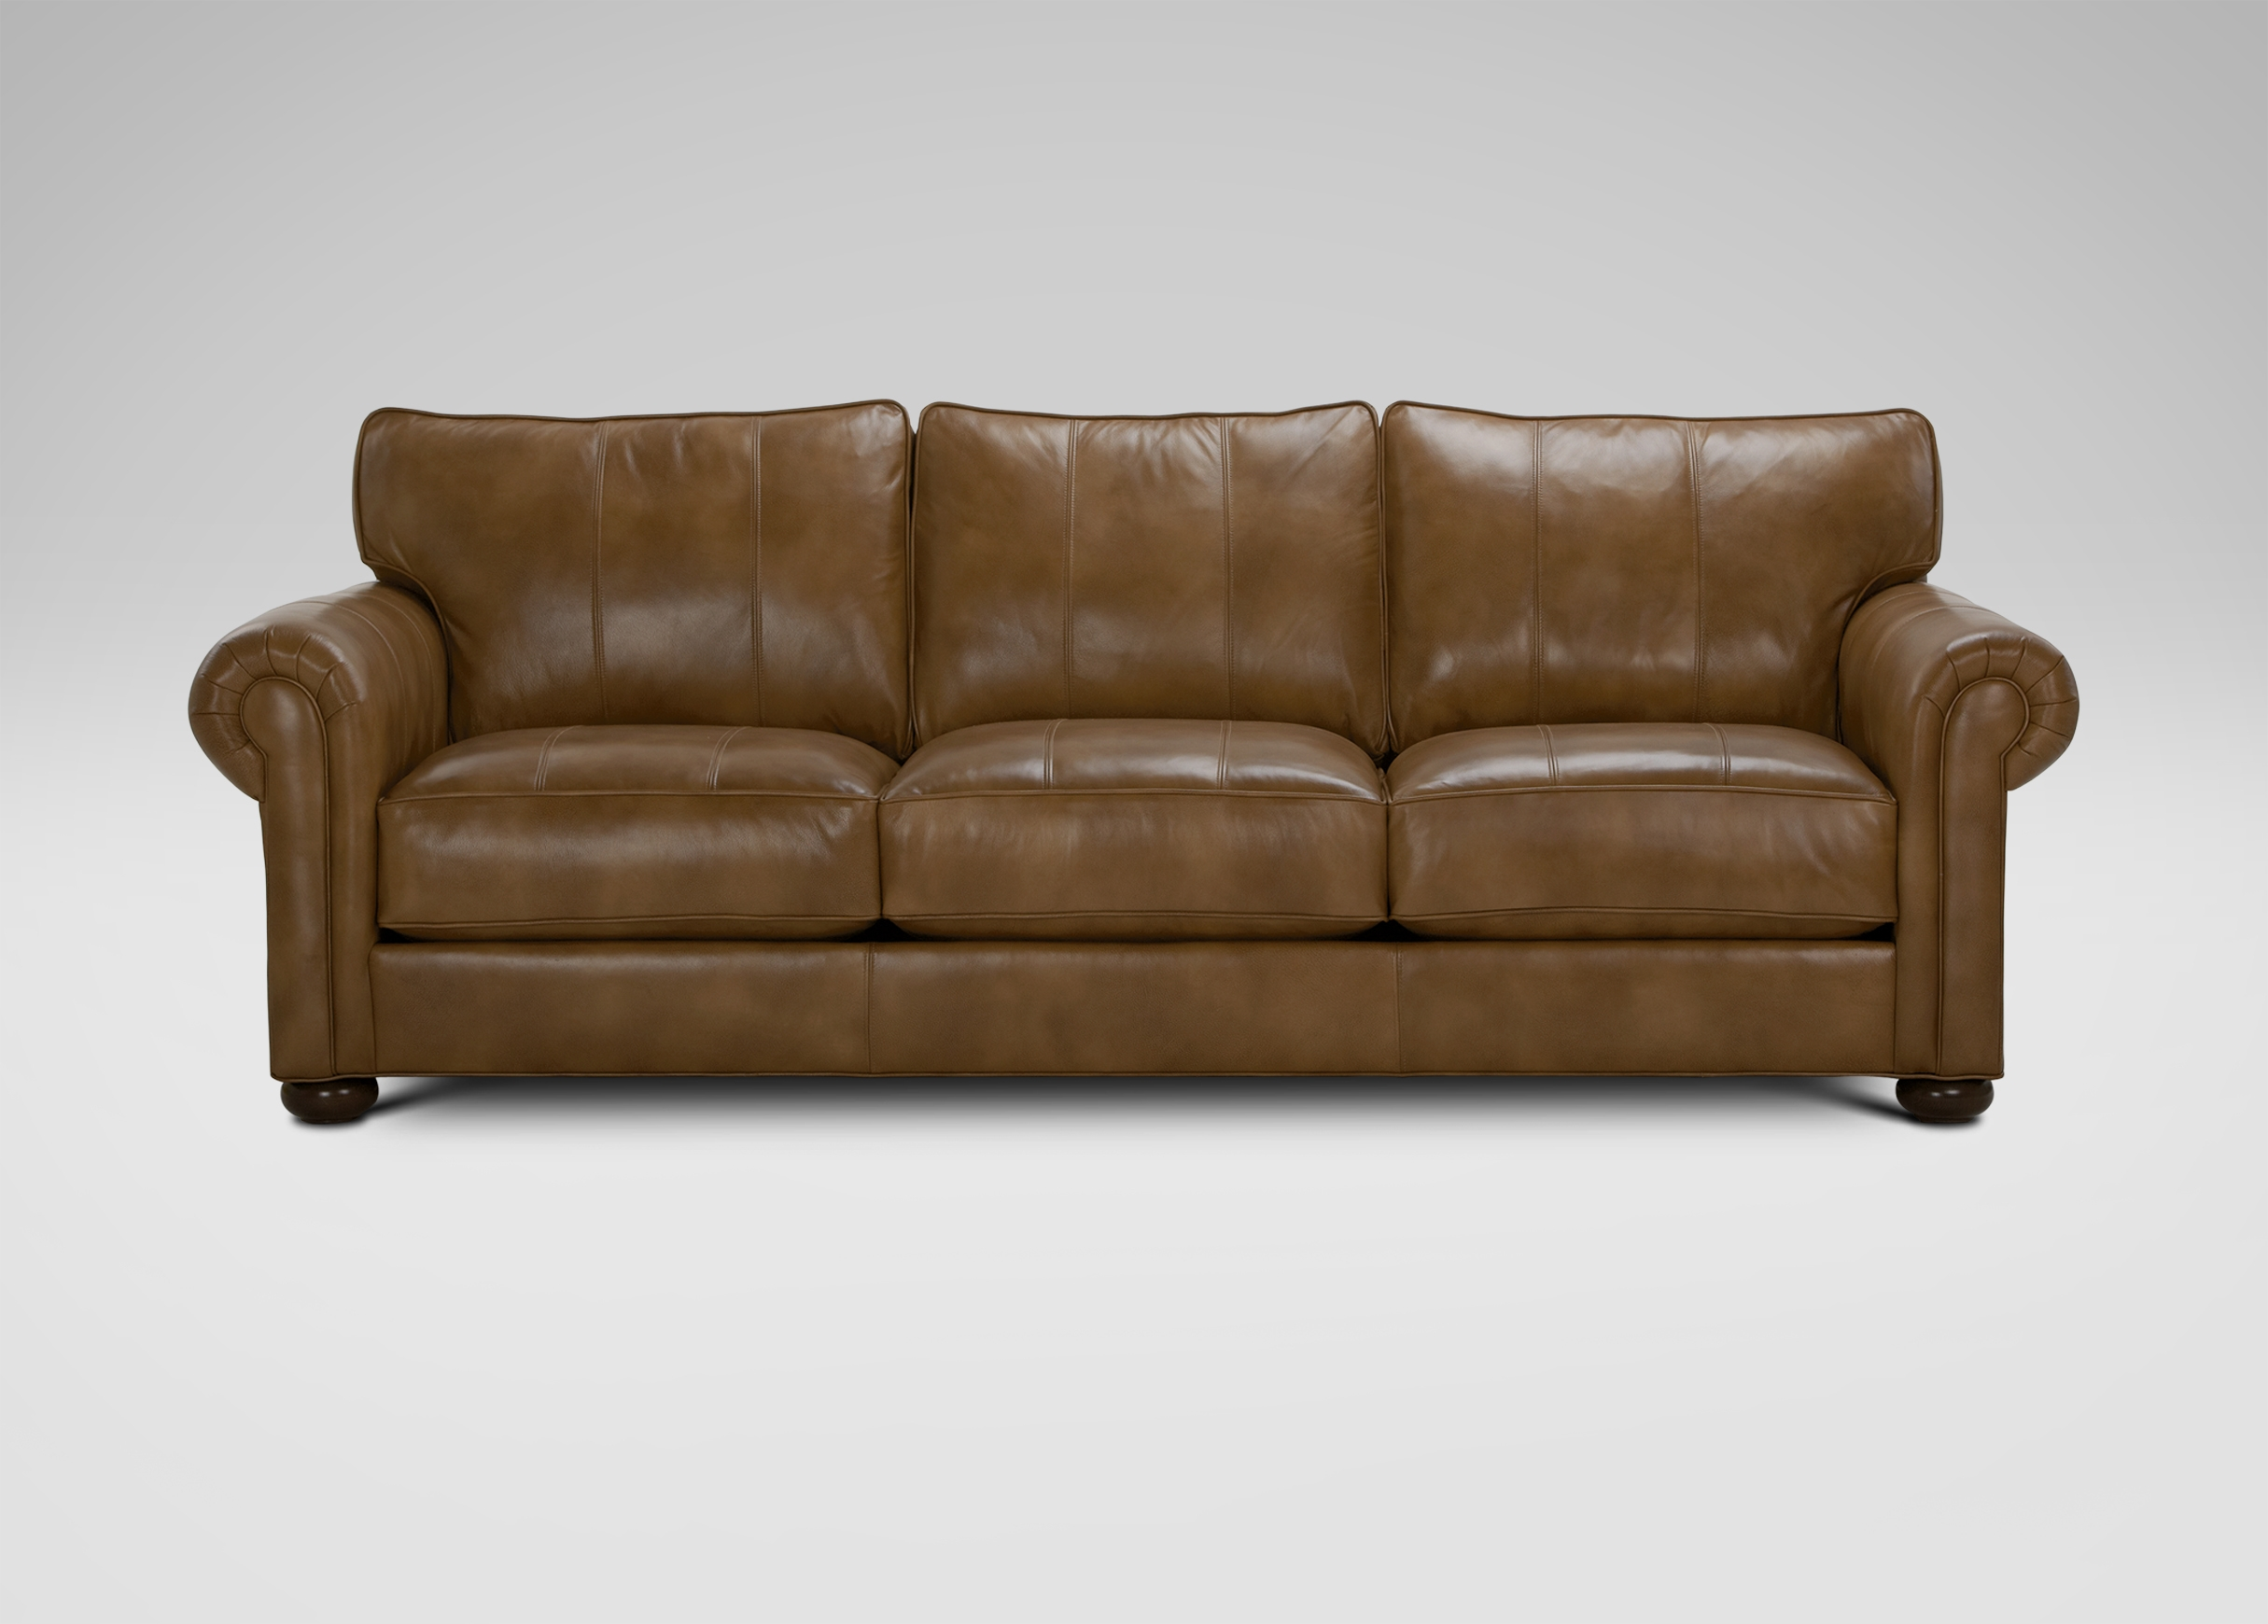 melrose leather sofa ethan allen decorating living room navy blue top 15 sofas and chairs ideas